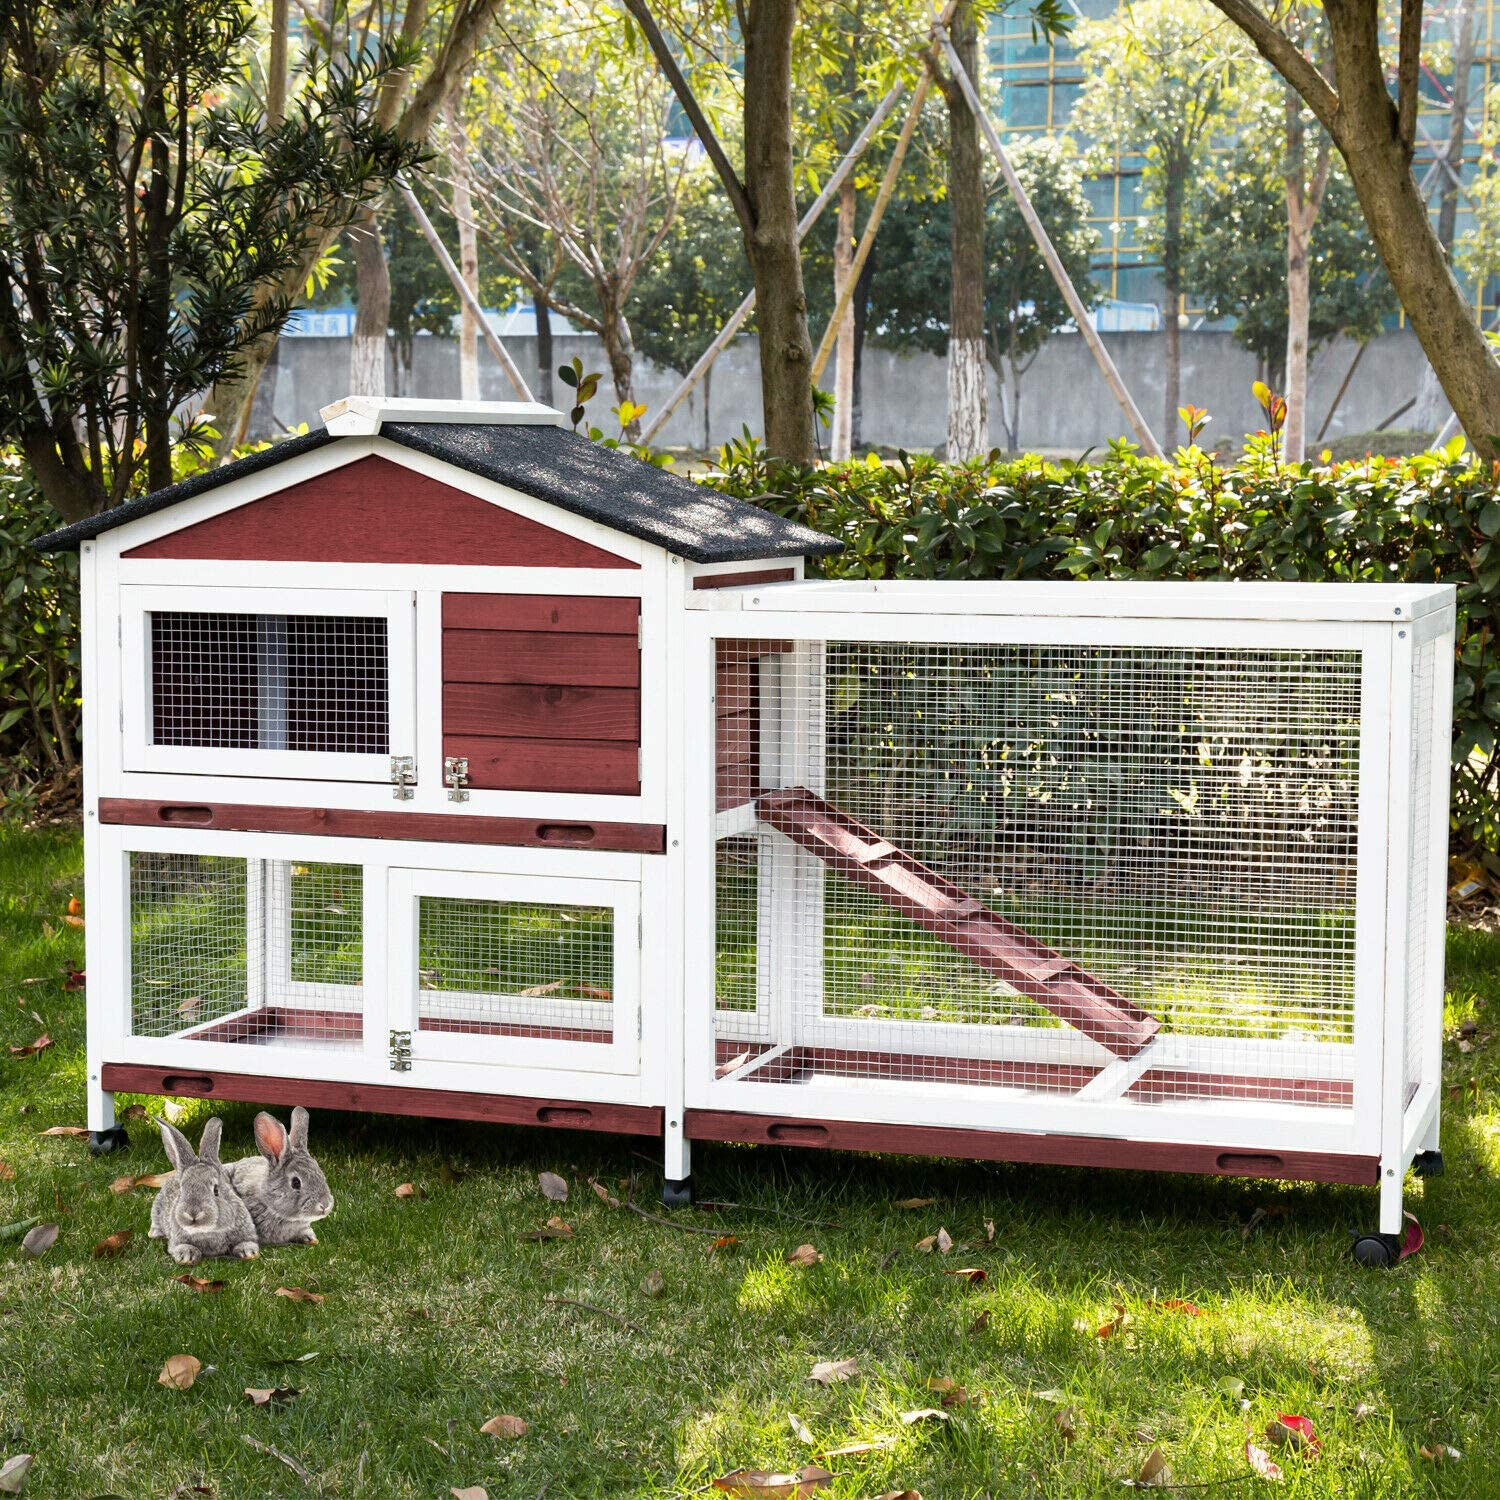 15+ Kintness Large Wooden Rabbit Hutch Indoor and Outdoor Bunny cage on Wheels  Guinea Pig Coop PET House for Small with Ramp and Cleaning Tray Bilder